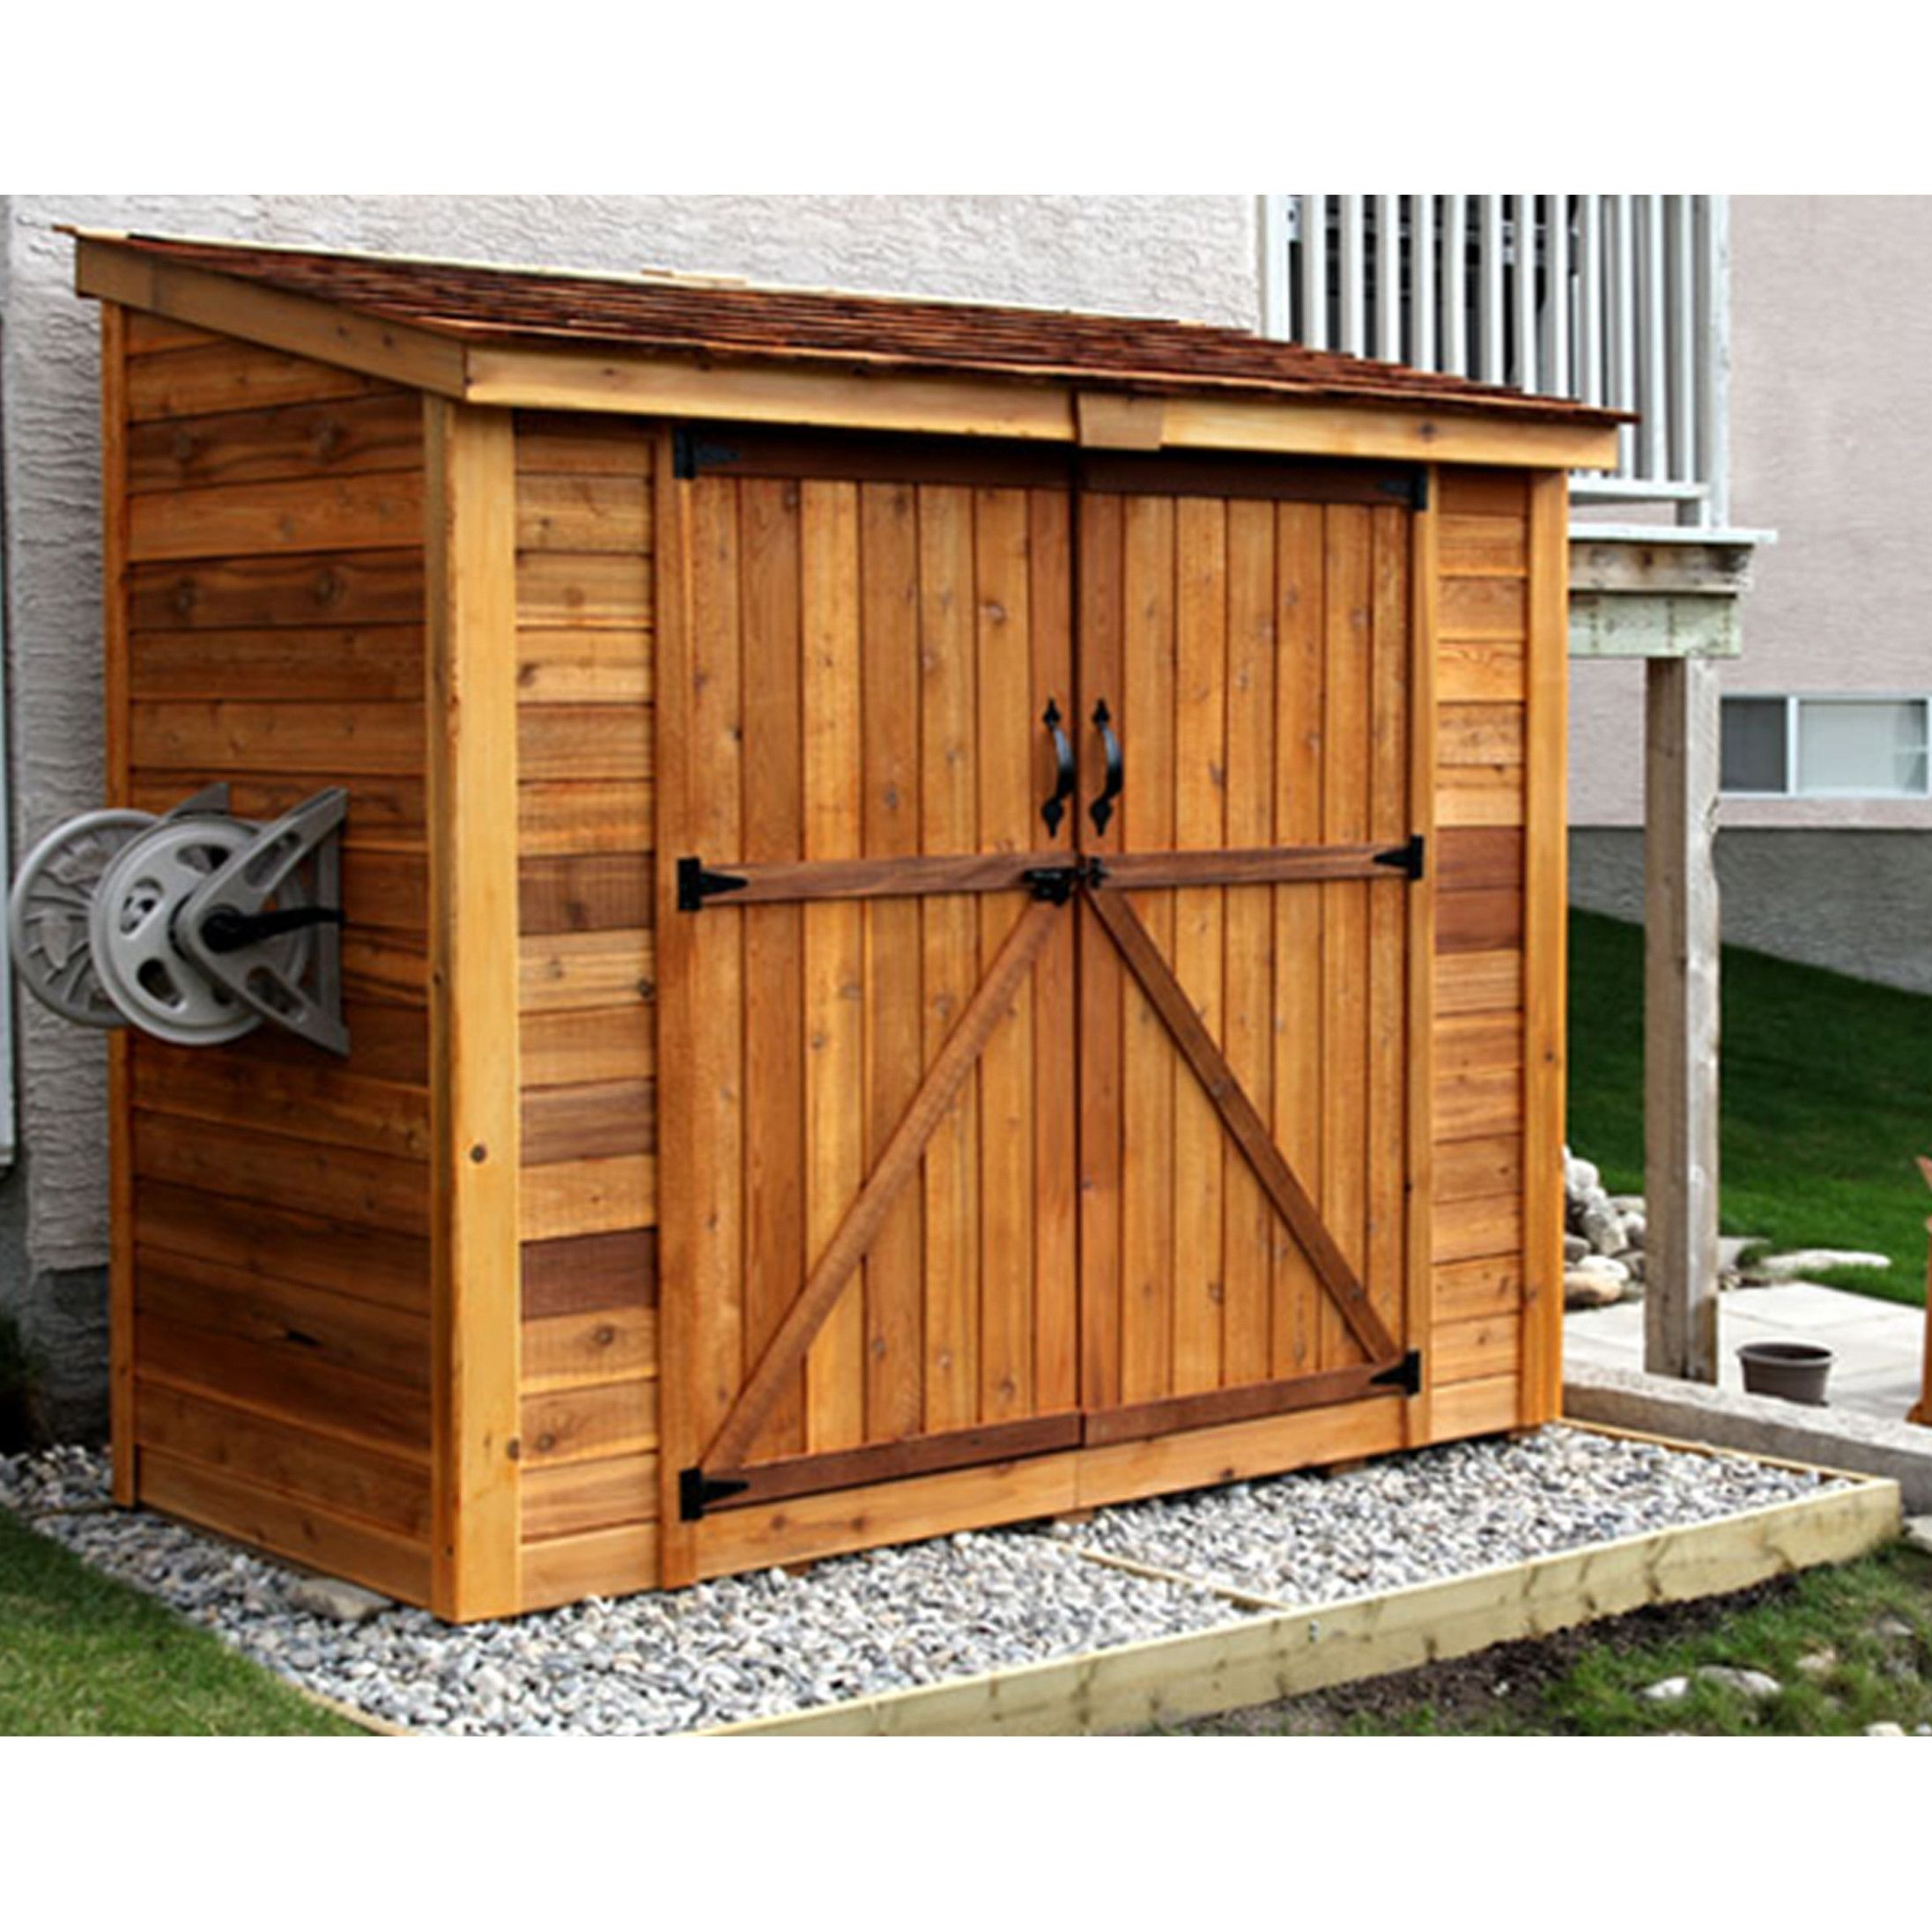 Garden shed with double doors shed firewood storage for Lean to storage shed